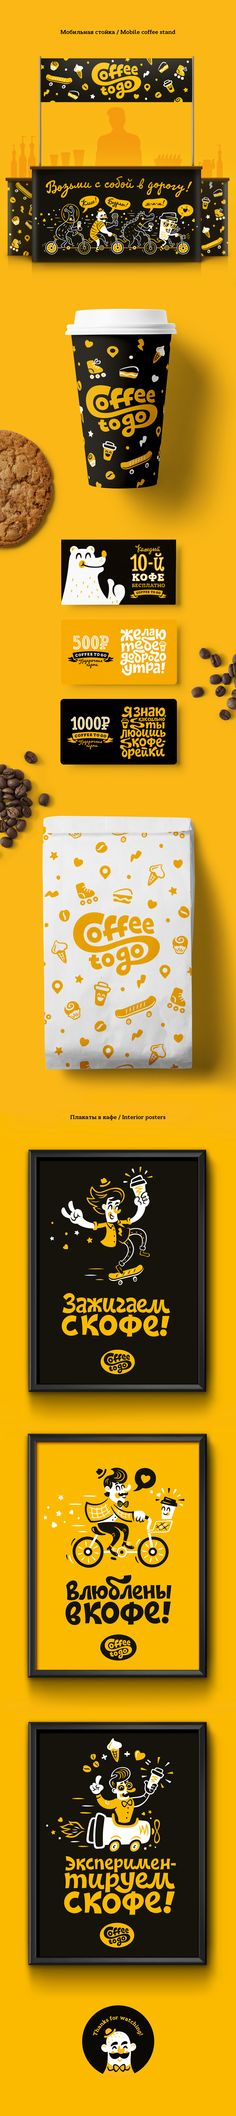 https://www.behance.net/gallery/20876947/Coffee-to-Go